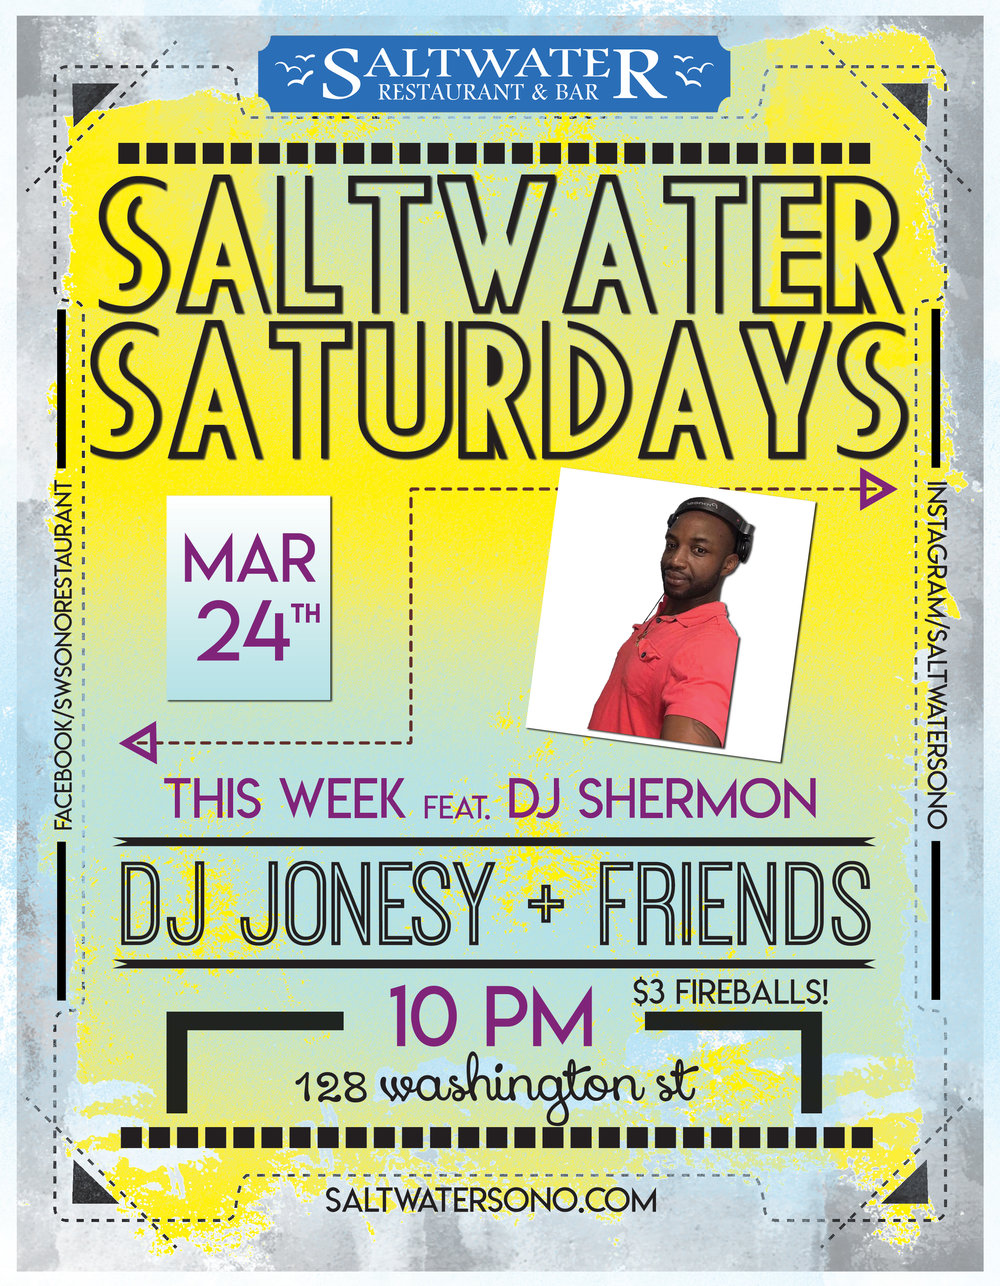 saltwater-saturdays-3-24.jpg